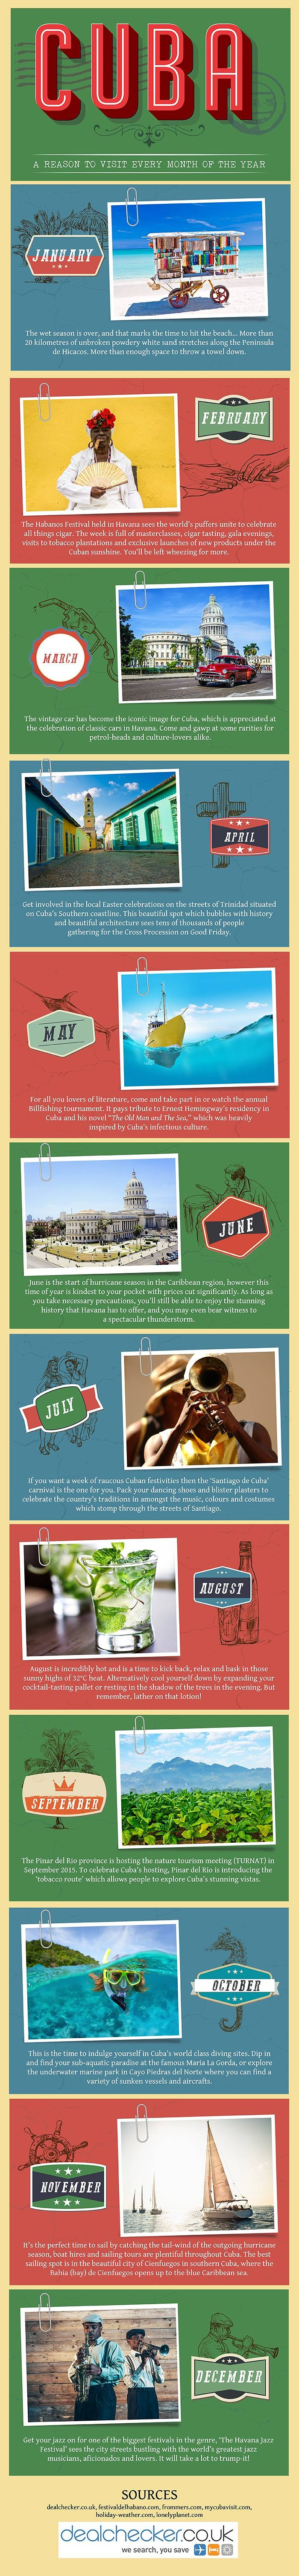 Cuba Infographic - A Reason to Visit Every Month of the Year